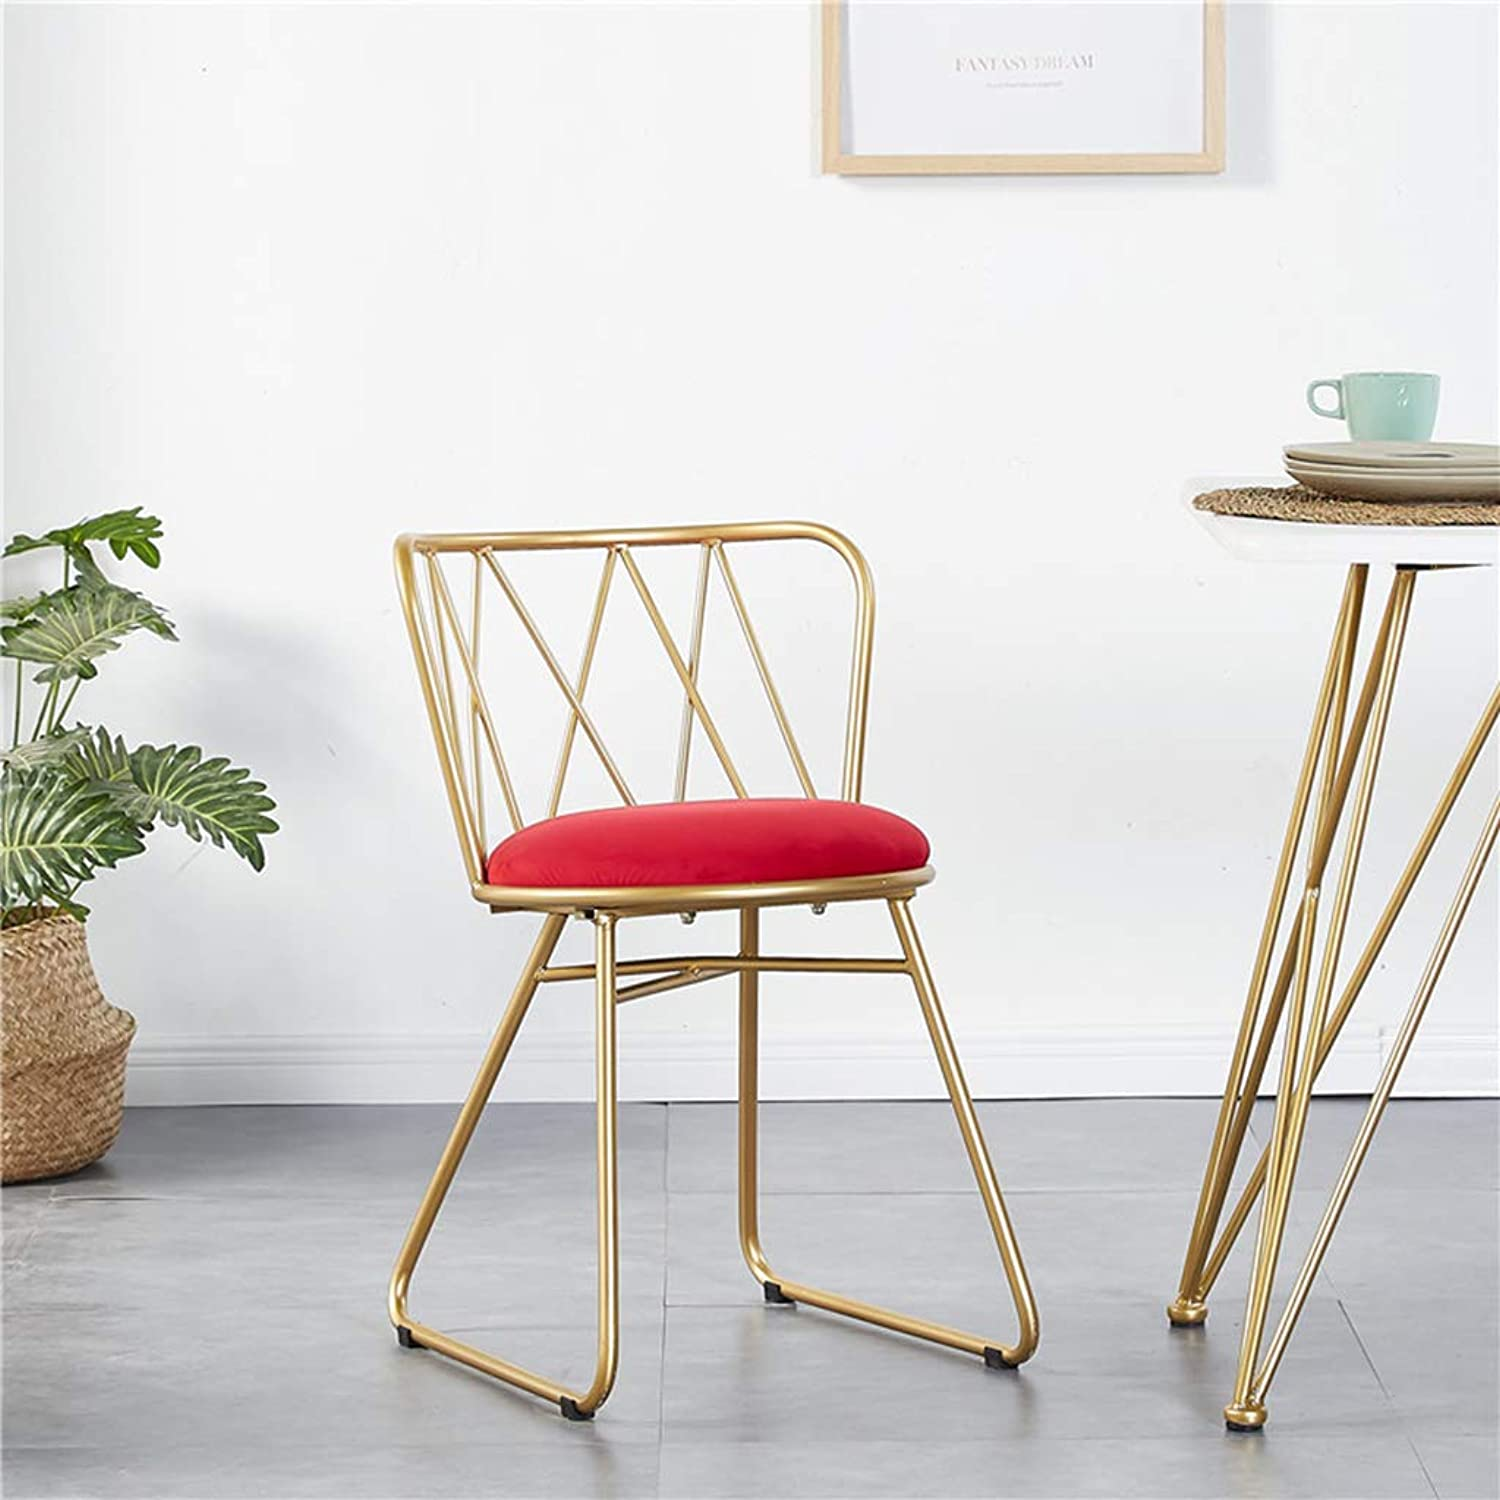 Stool Iron Art gold Armchair Bedroom Multifunction Dressing Chair European Style Environmental Predection Makeup Stool Household Simple Change shoes Bench,Red